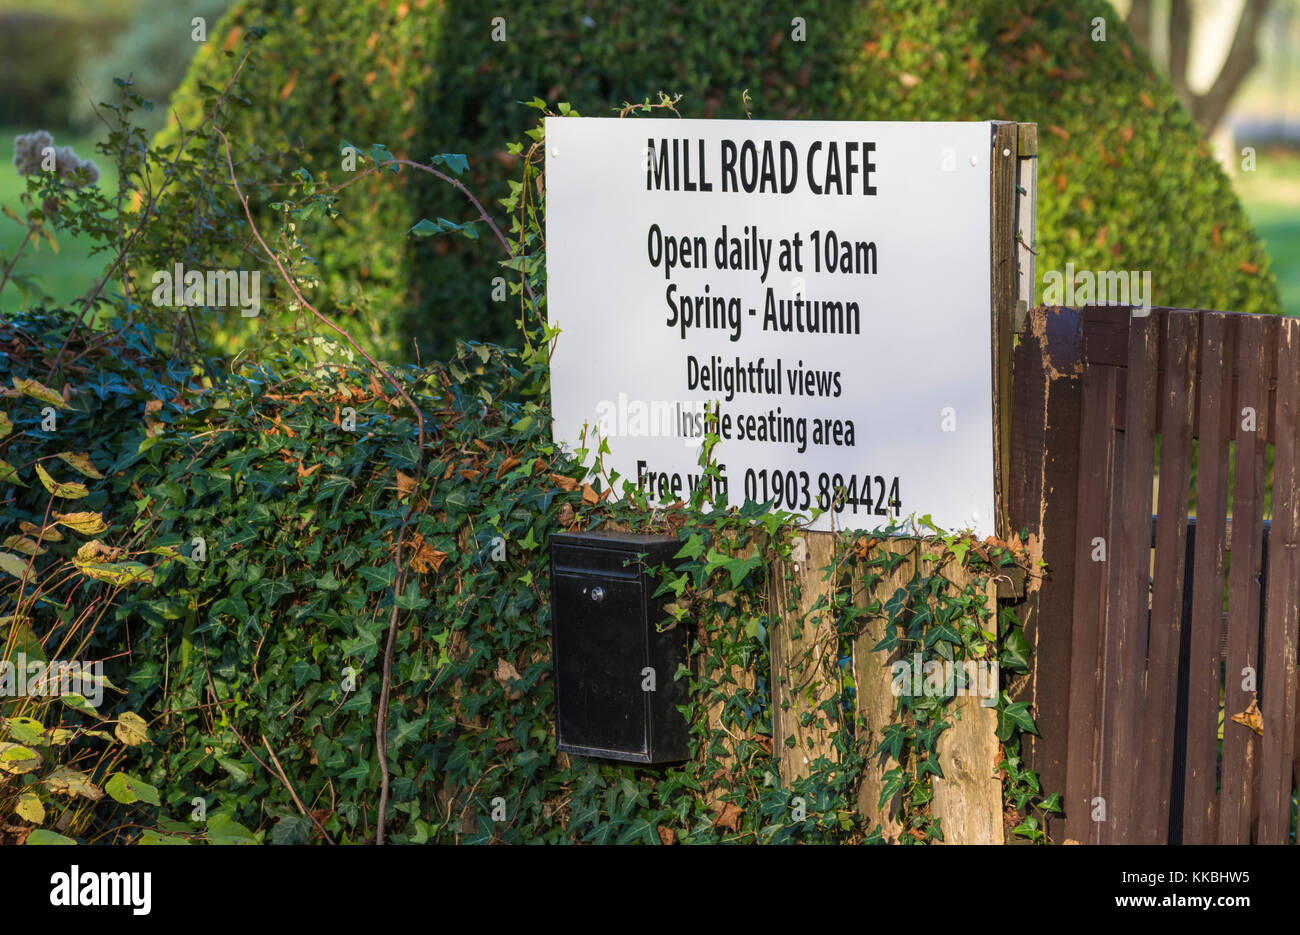 Cafe sign showing seasonal opening and closing times. - Stock Image